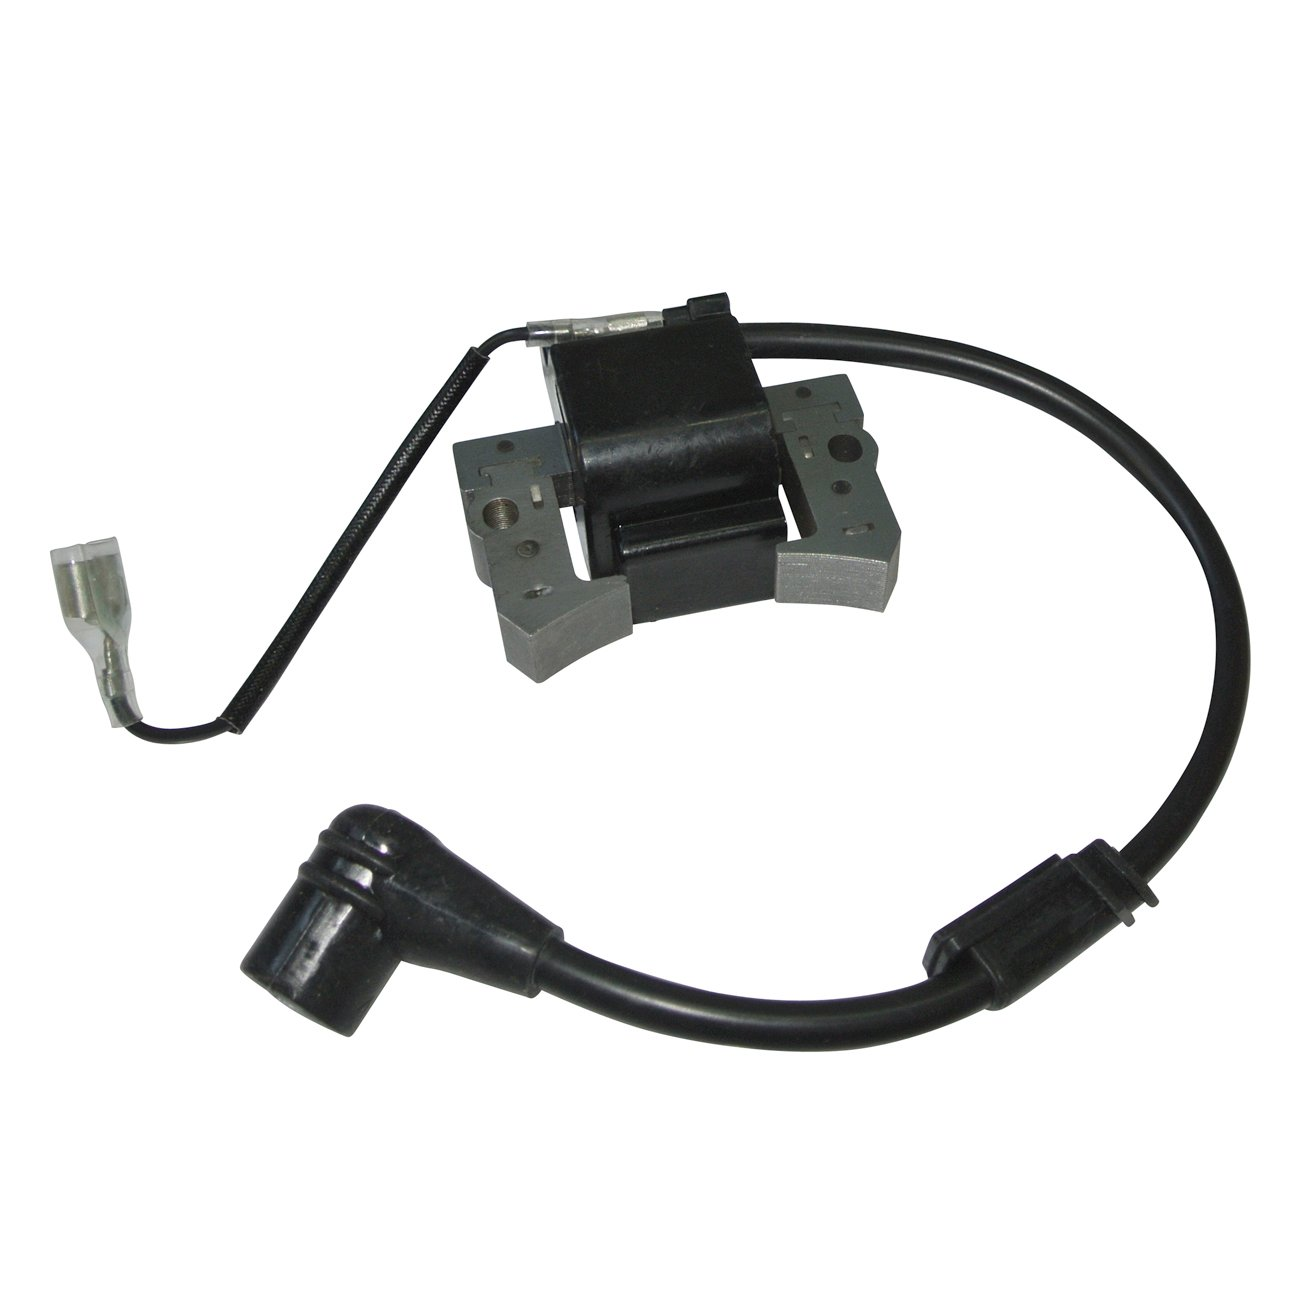 Amazon.com: Northtiger Ignition Coil Module Magneto Parts ...